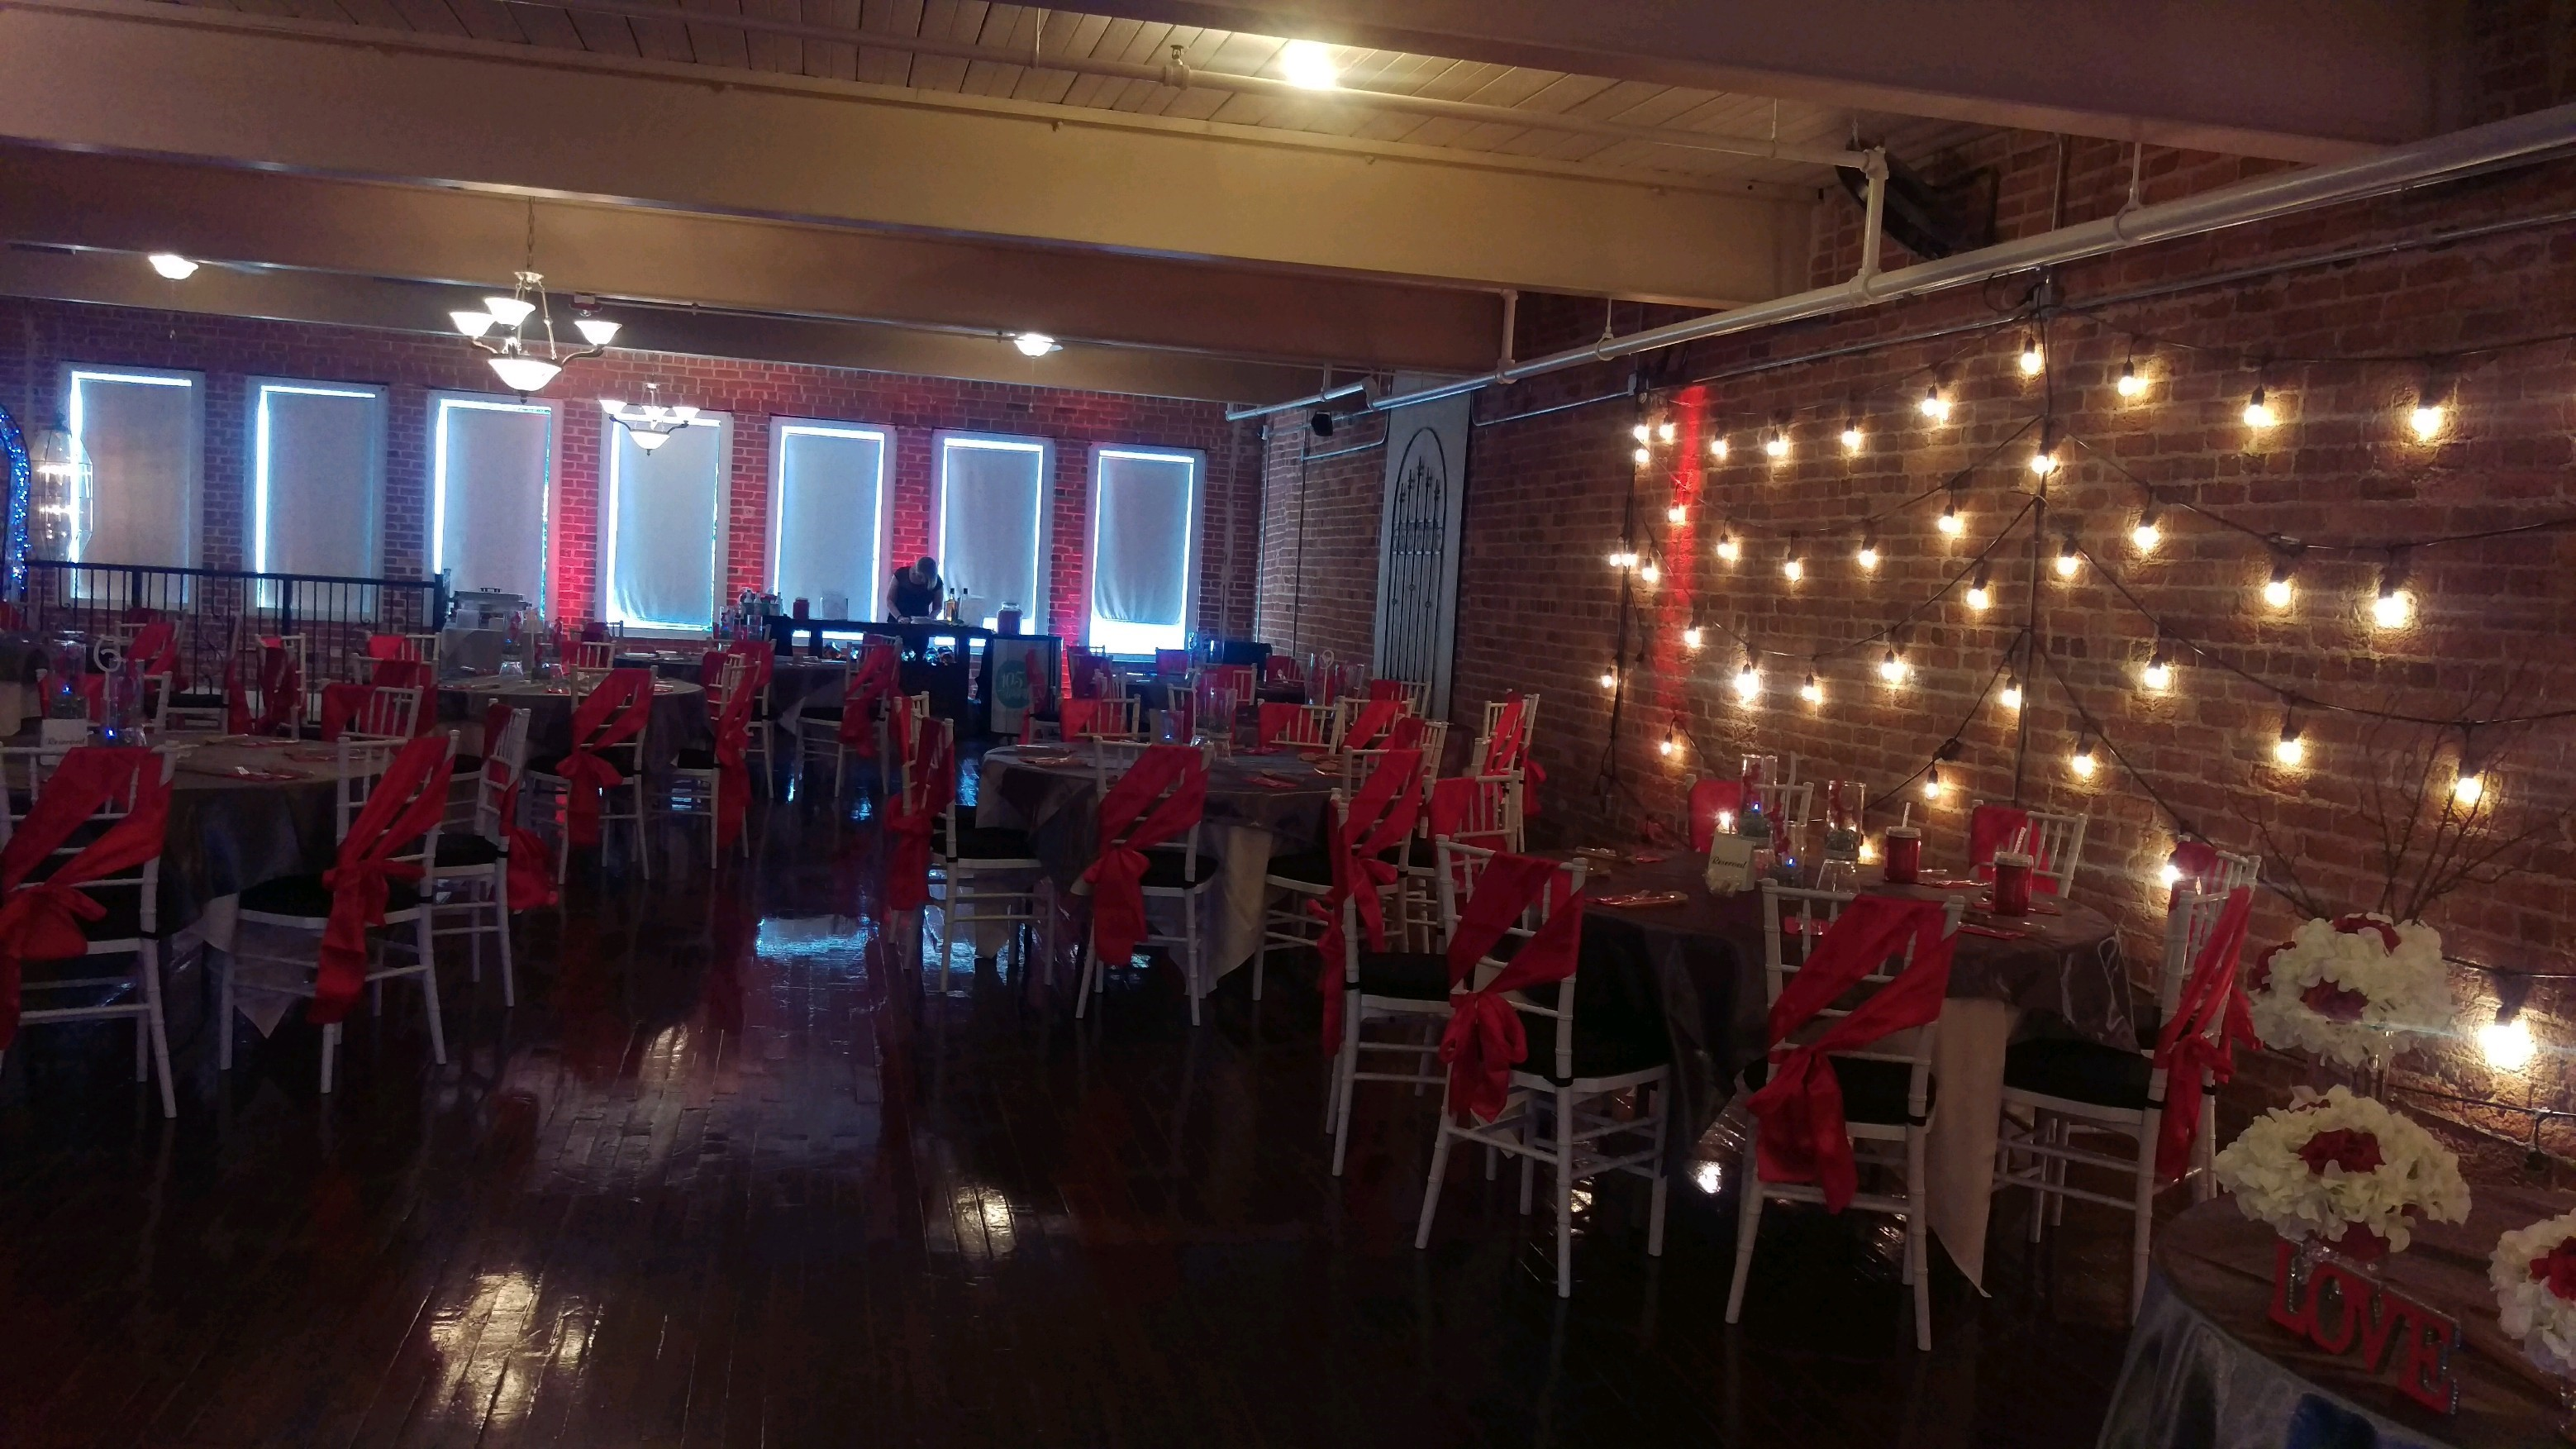 Restaurant hall with round tables decorated with red sashes and string lights on a brick wall